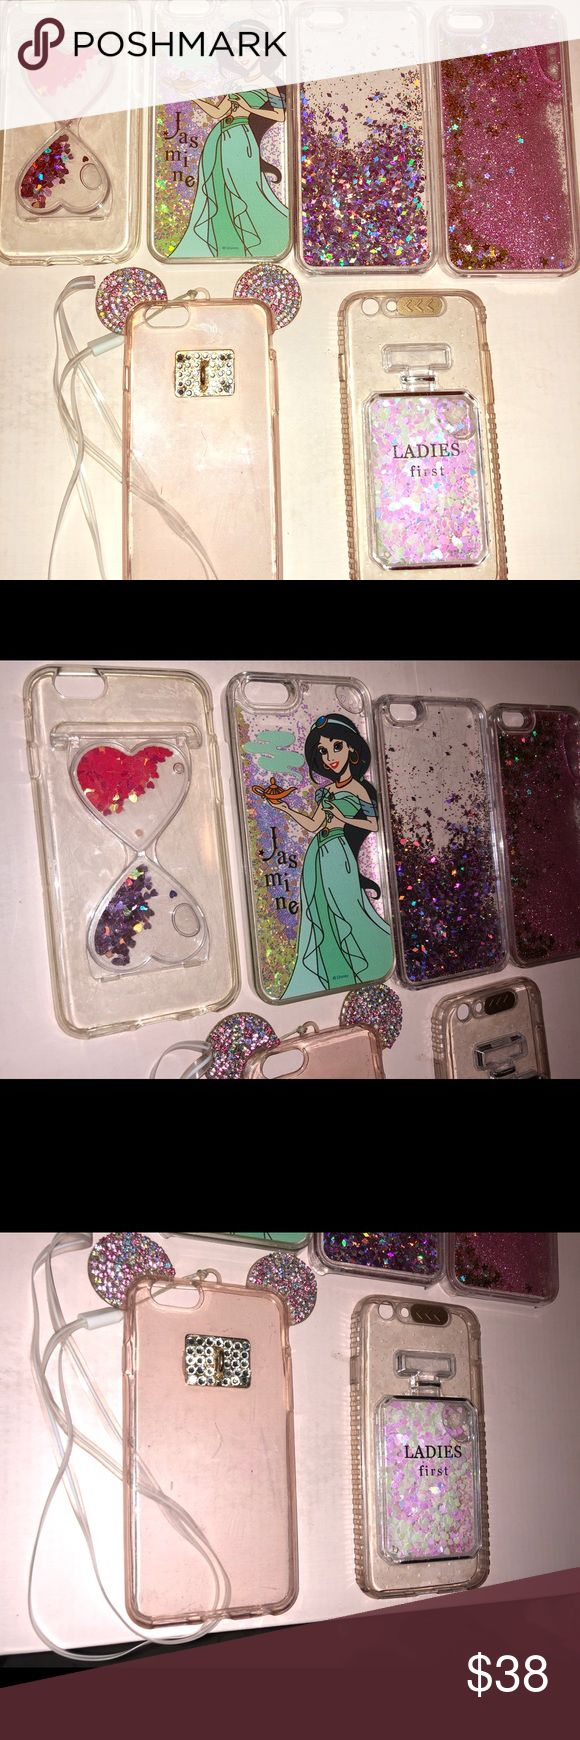 iPhone six cases with moving glitter interior iPhone 6 cases lightly used Accessories Phone Cases